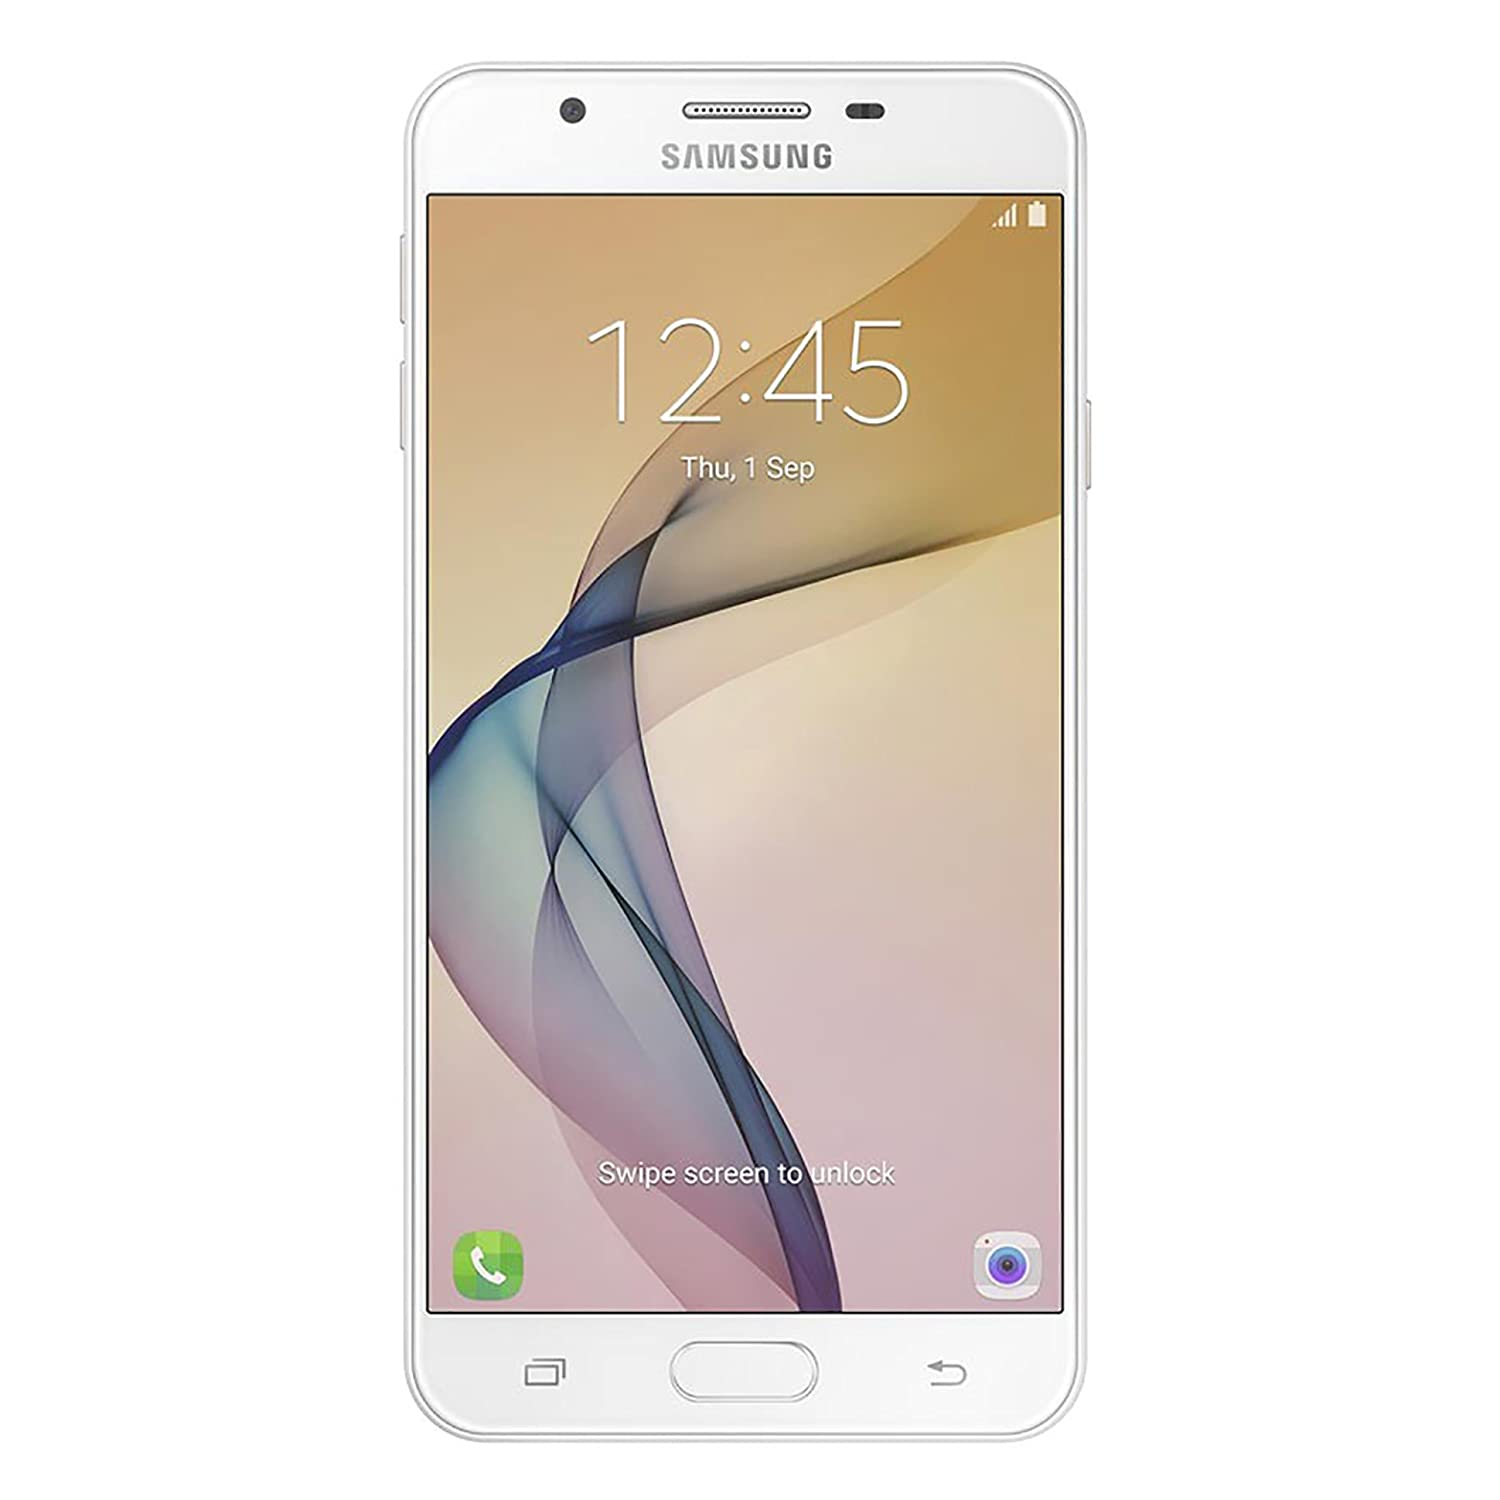 53bfeff8b Amazon.com  Samsung Galaxy J7 Prime Factory Unlocked Phone Dual Sim - 16GB  - White Gold  Cell Phones   Accessories